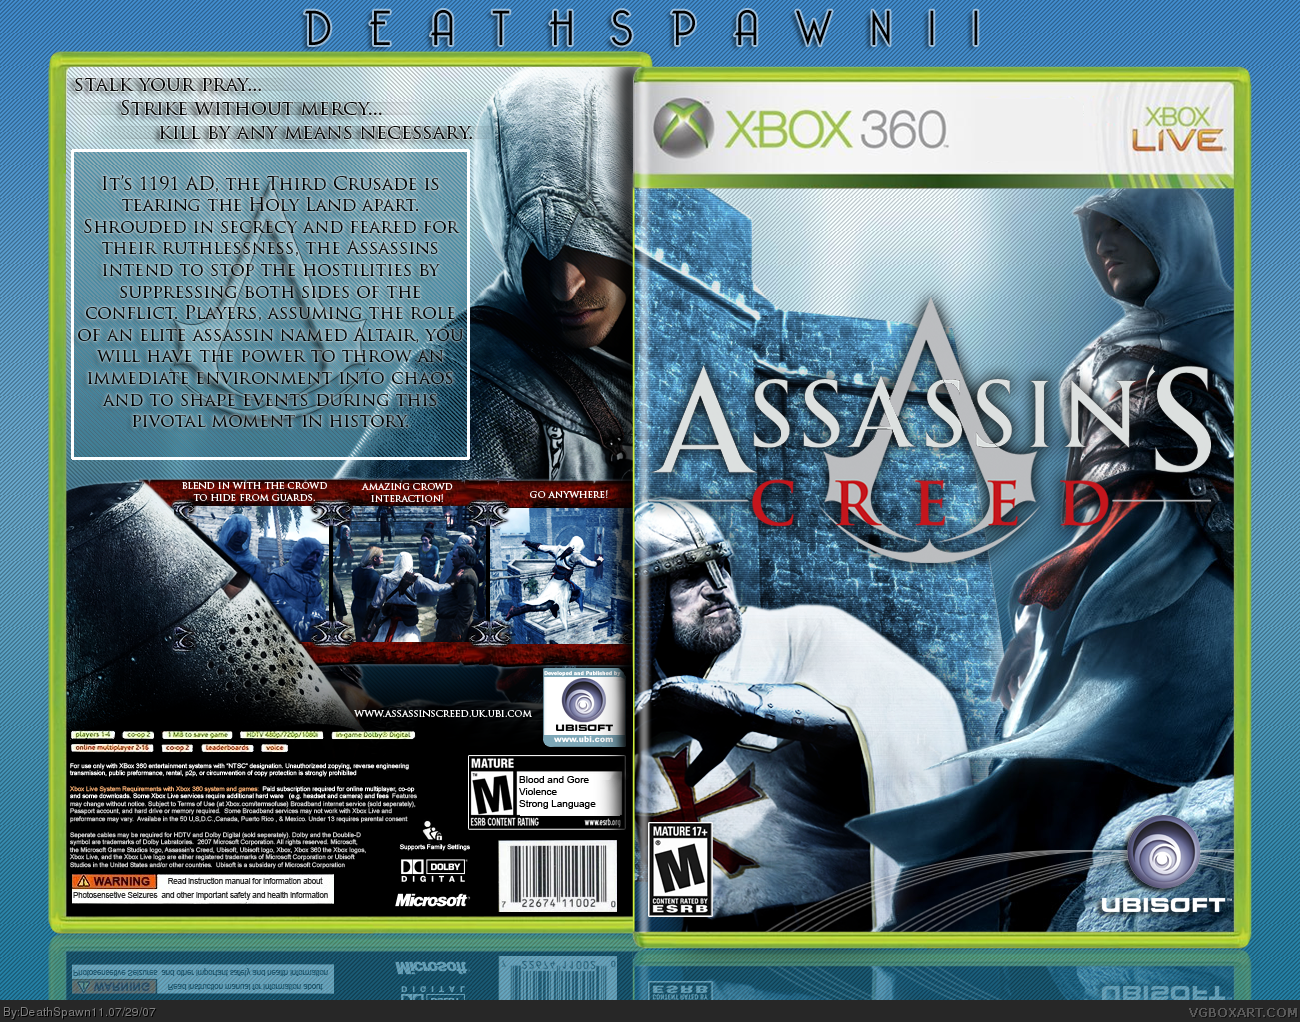 assassins creed xbox 360 box art cover by deathspawn11